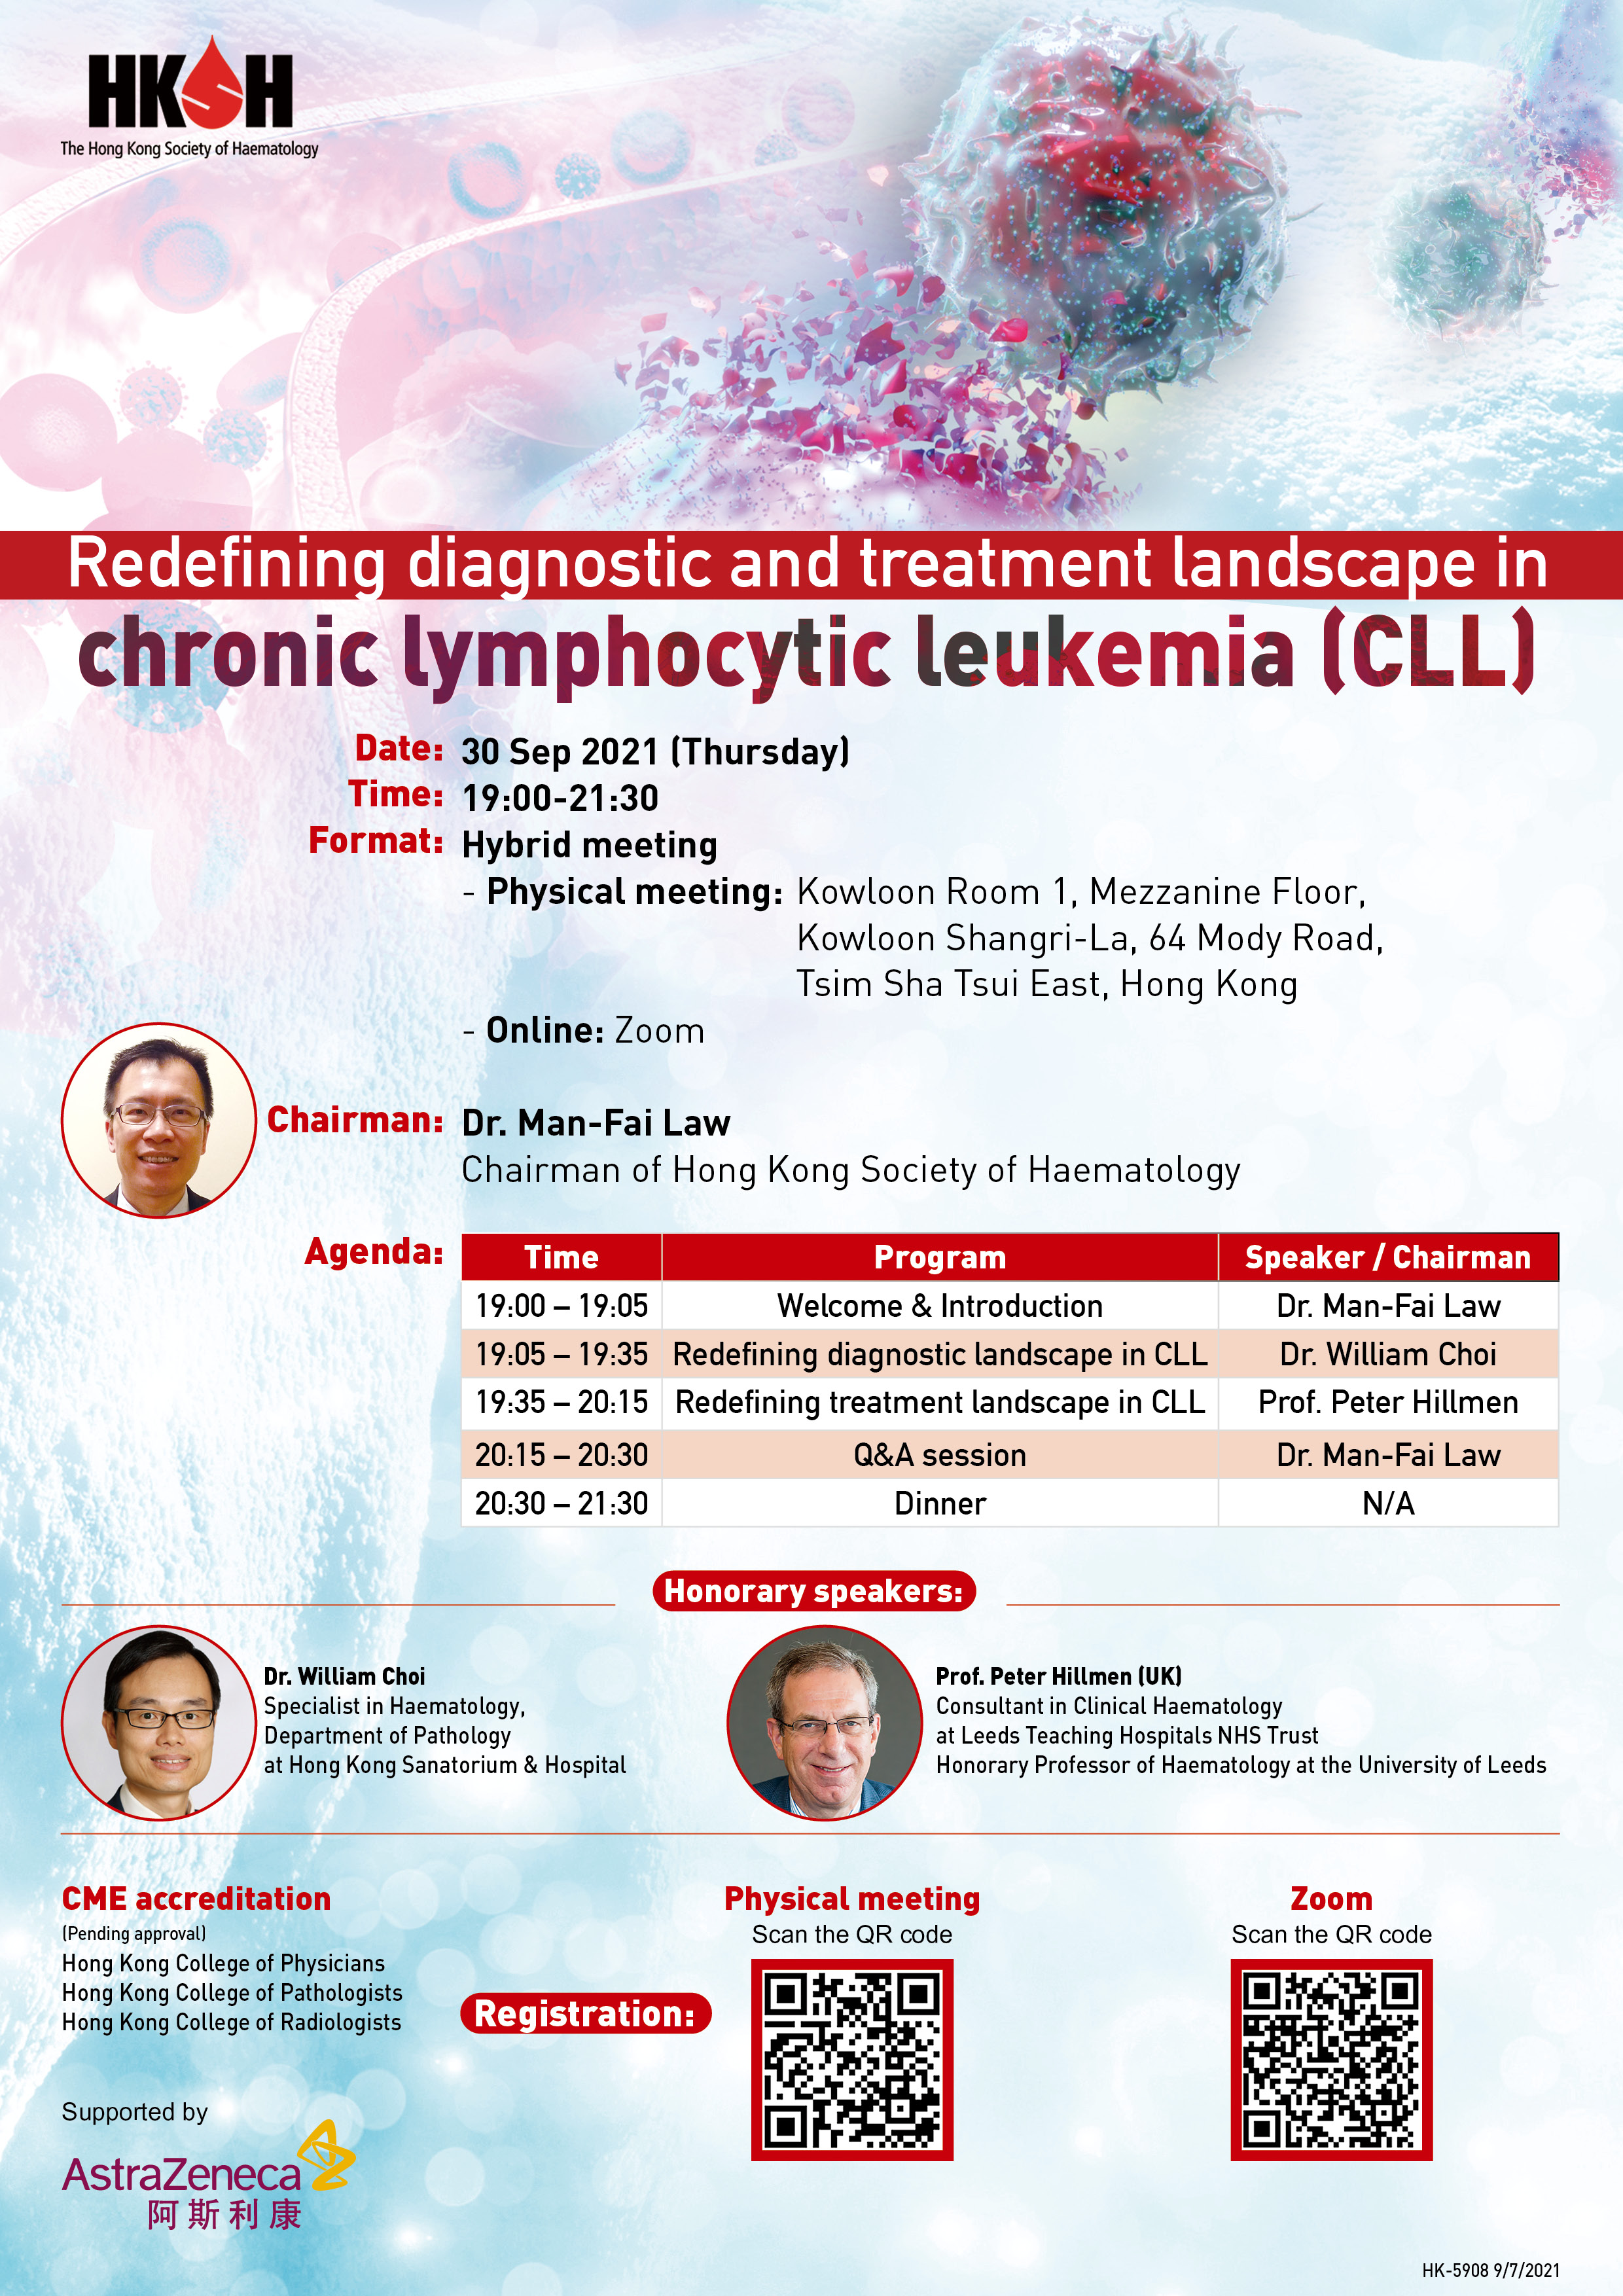 Redefining Diagnostic and Treatment Landscape in CLL, 30 Sep